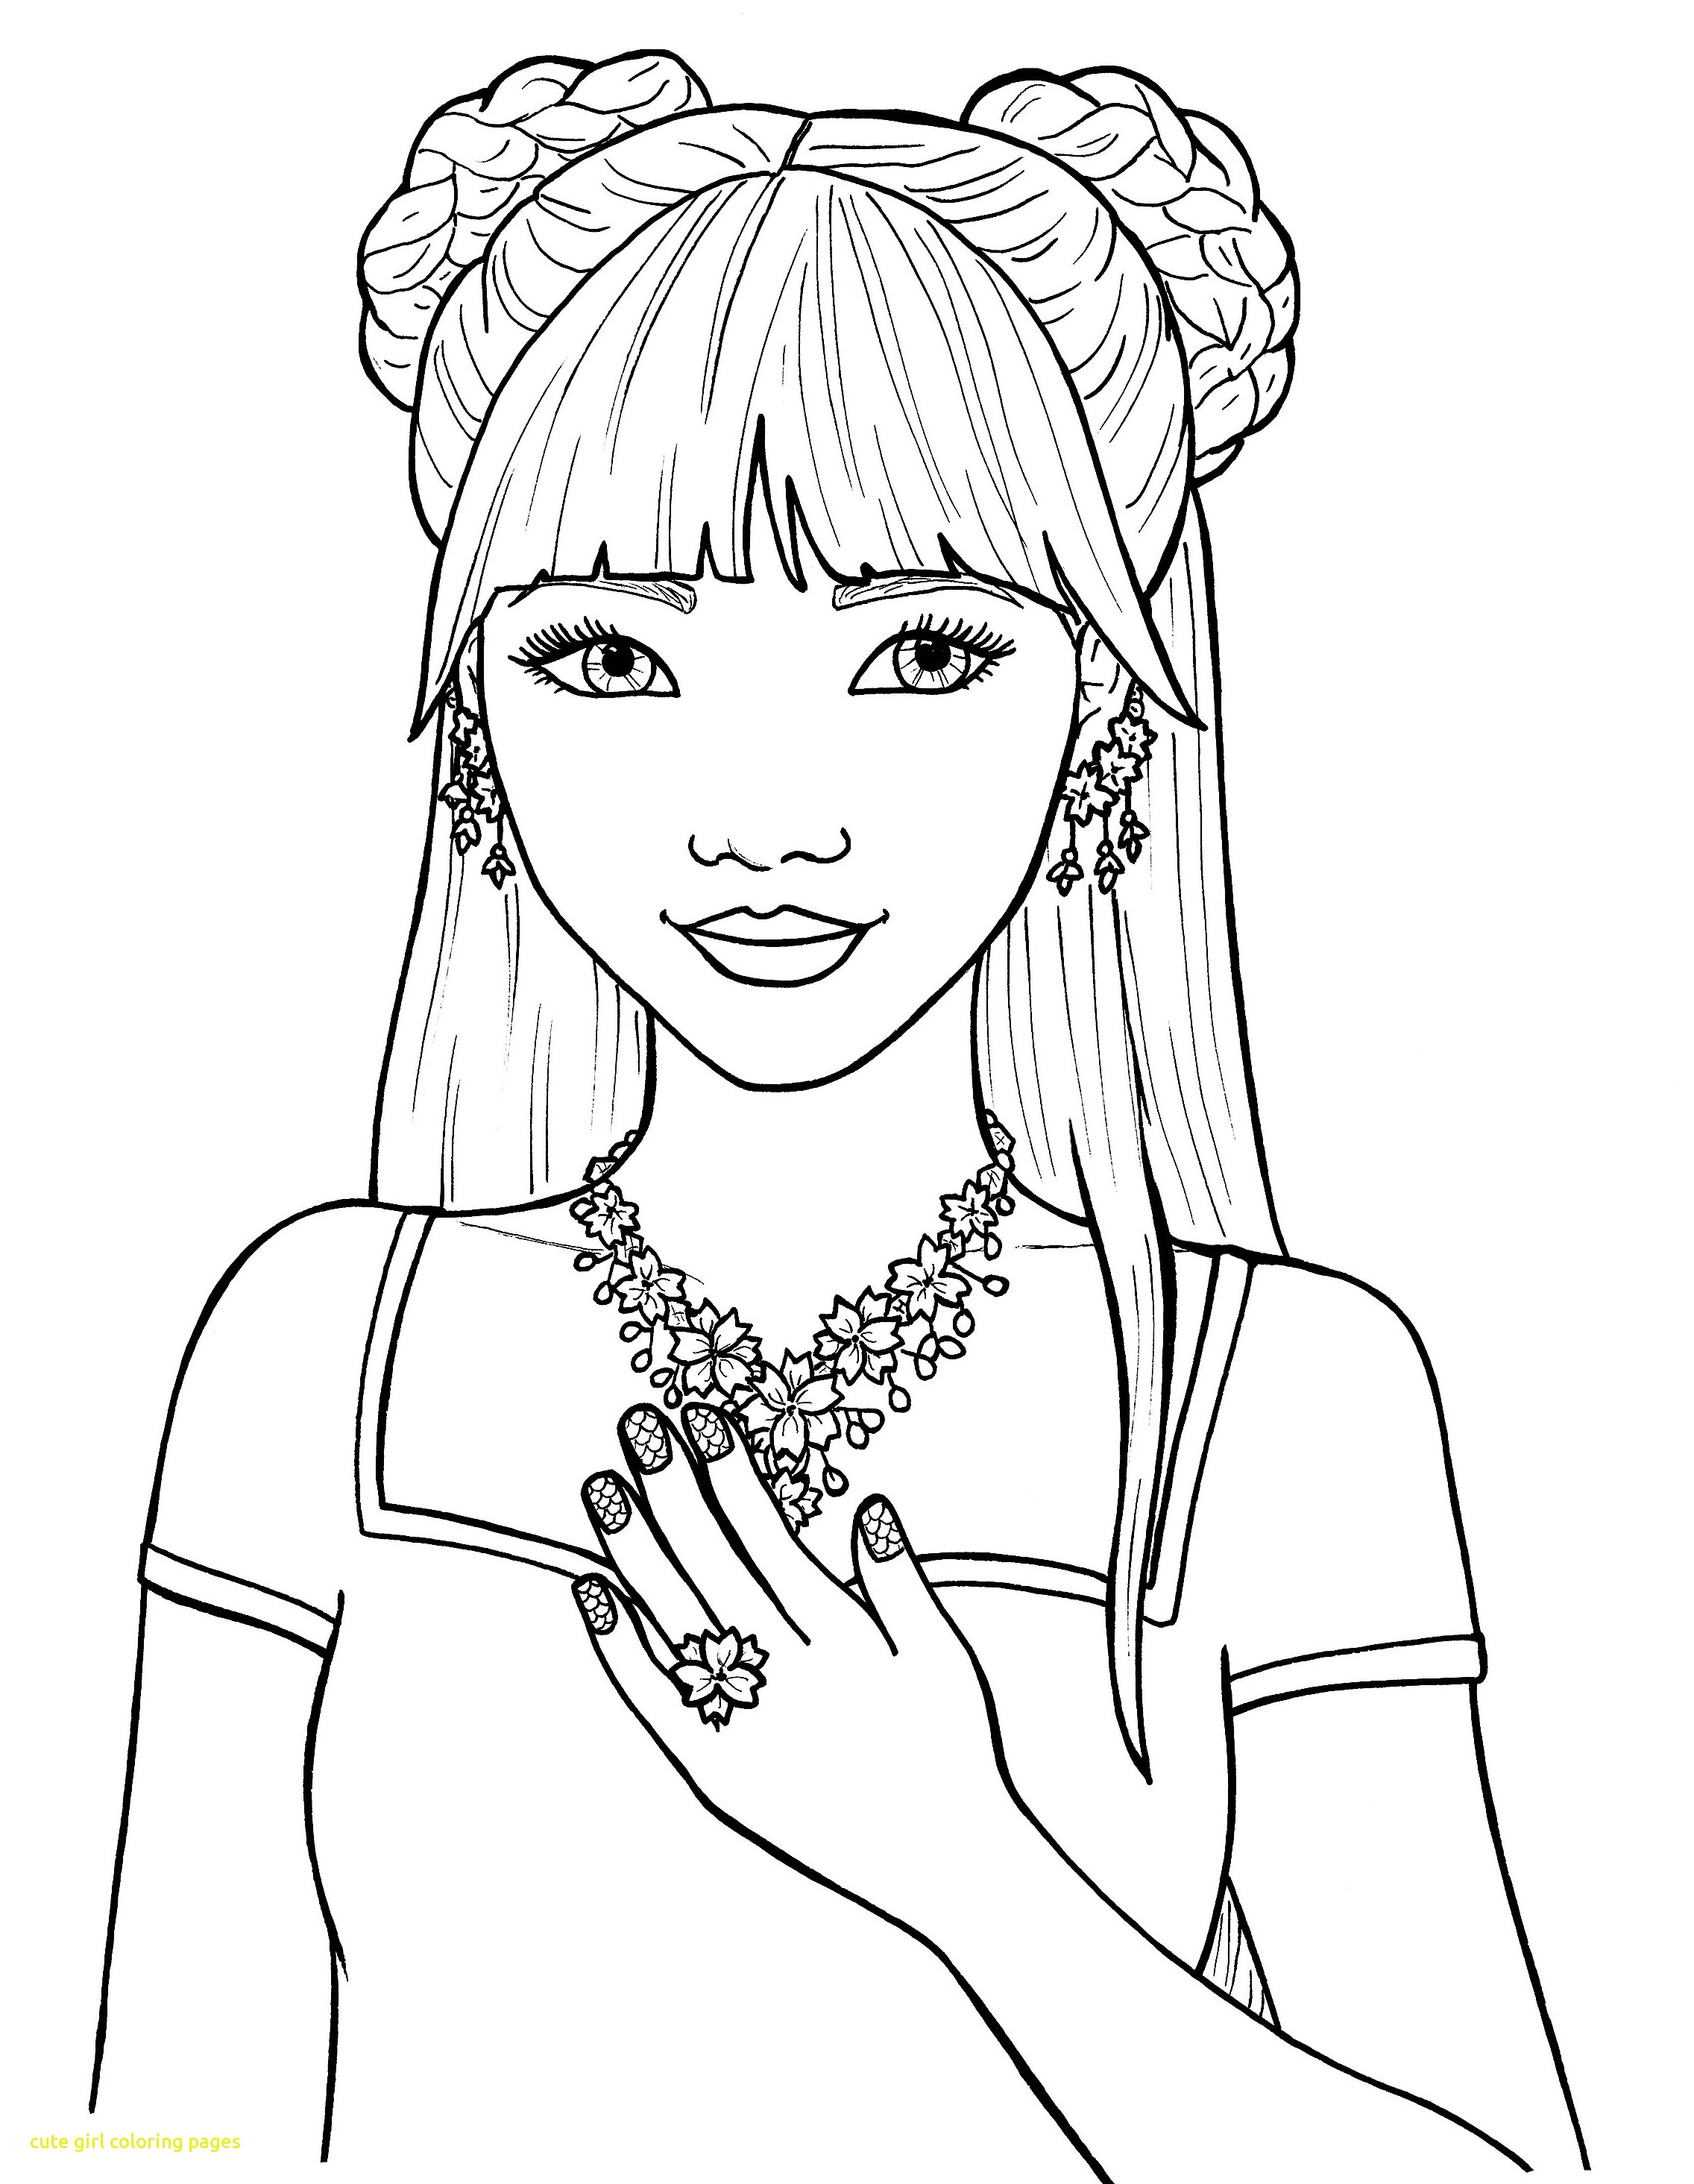 girl coloring pages printable coloring pages for girls best coloring pages for kids coloring pages printable girl